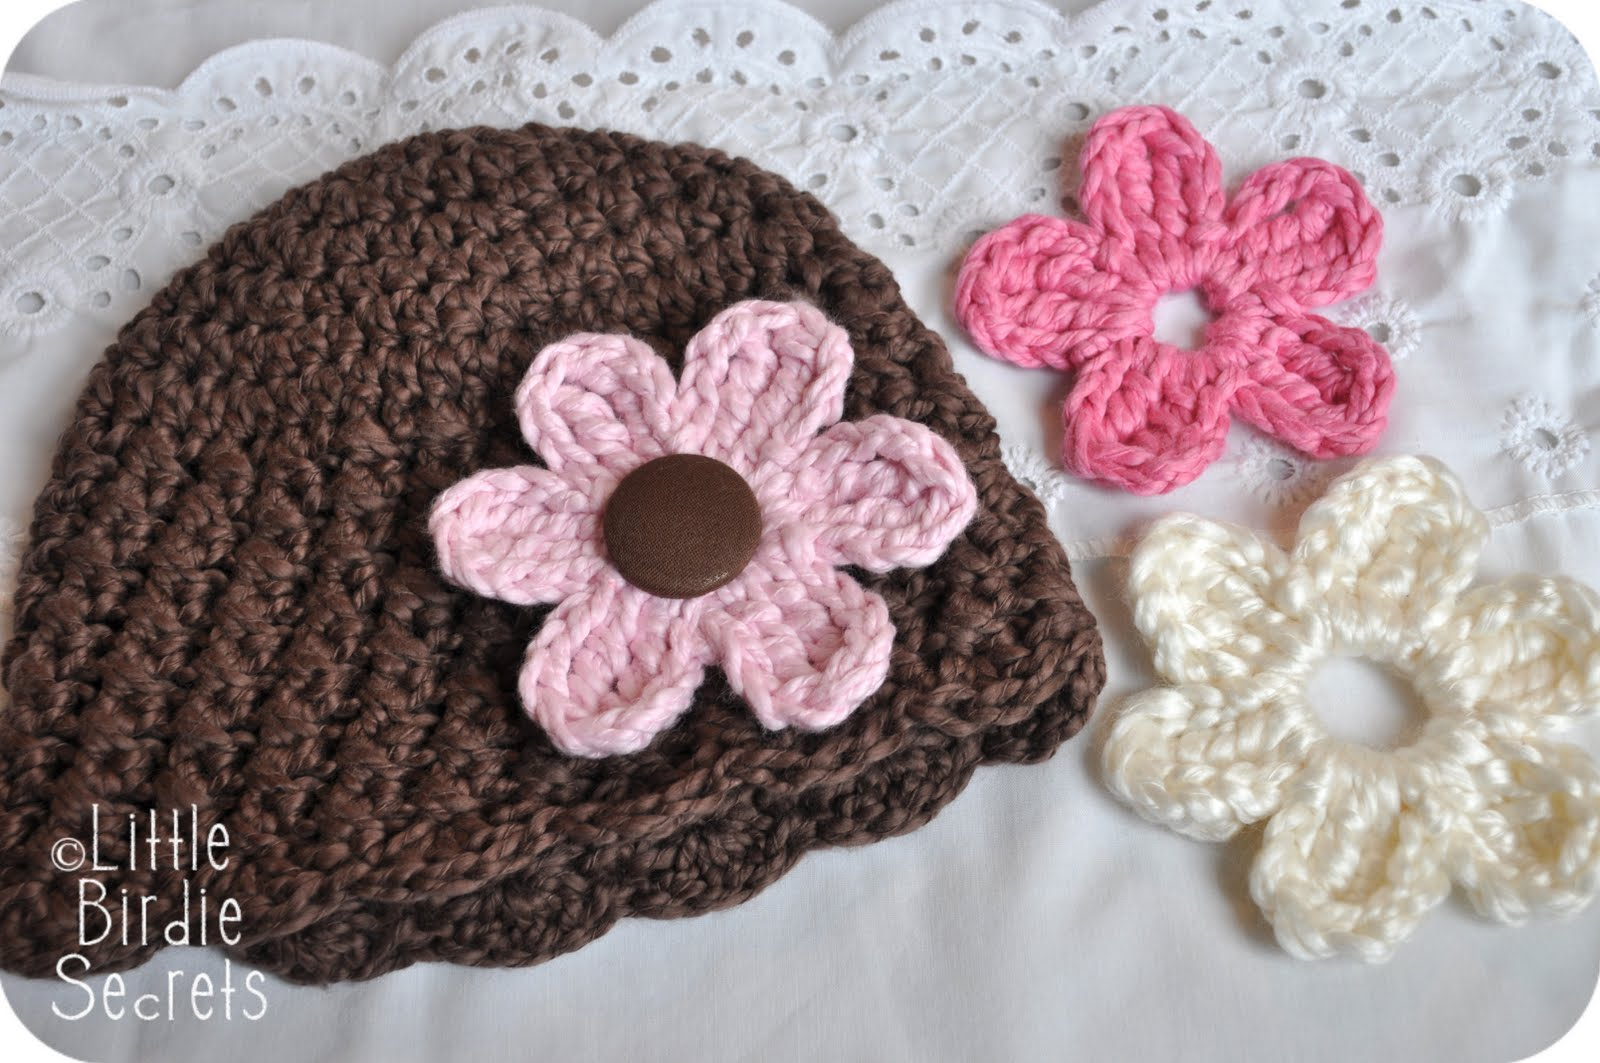 CROCHET FLOWER PATTERN FREE - Crochet ? Learn How to Crochet